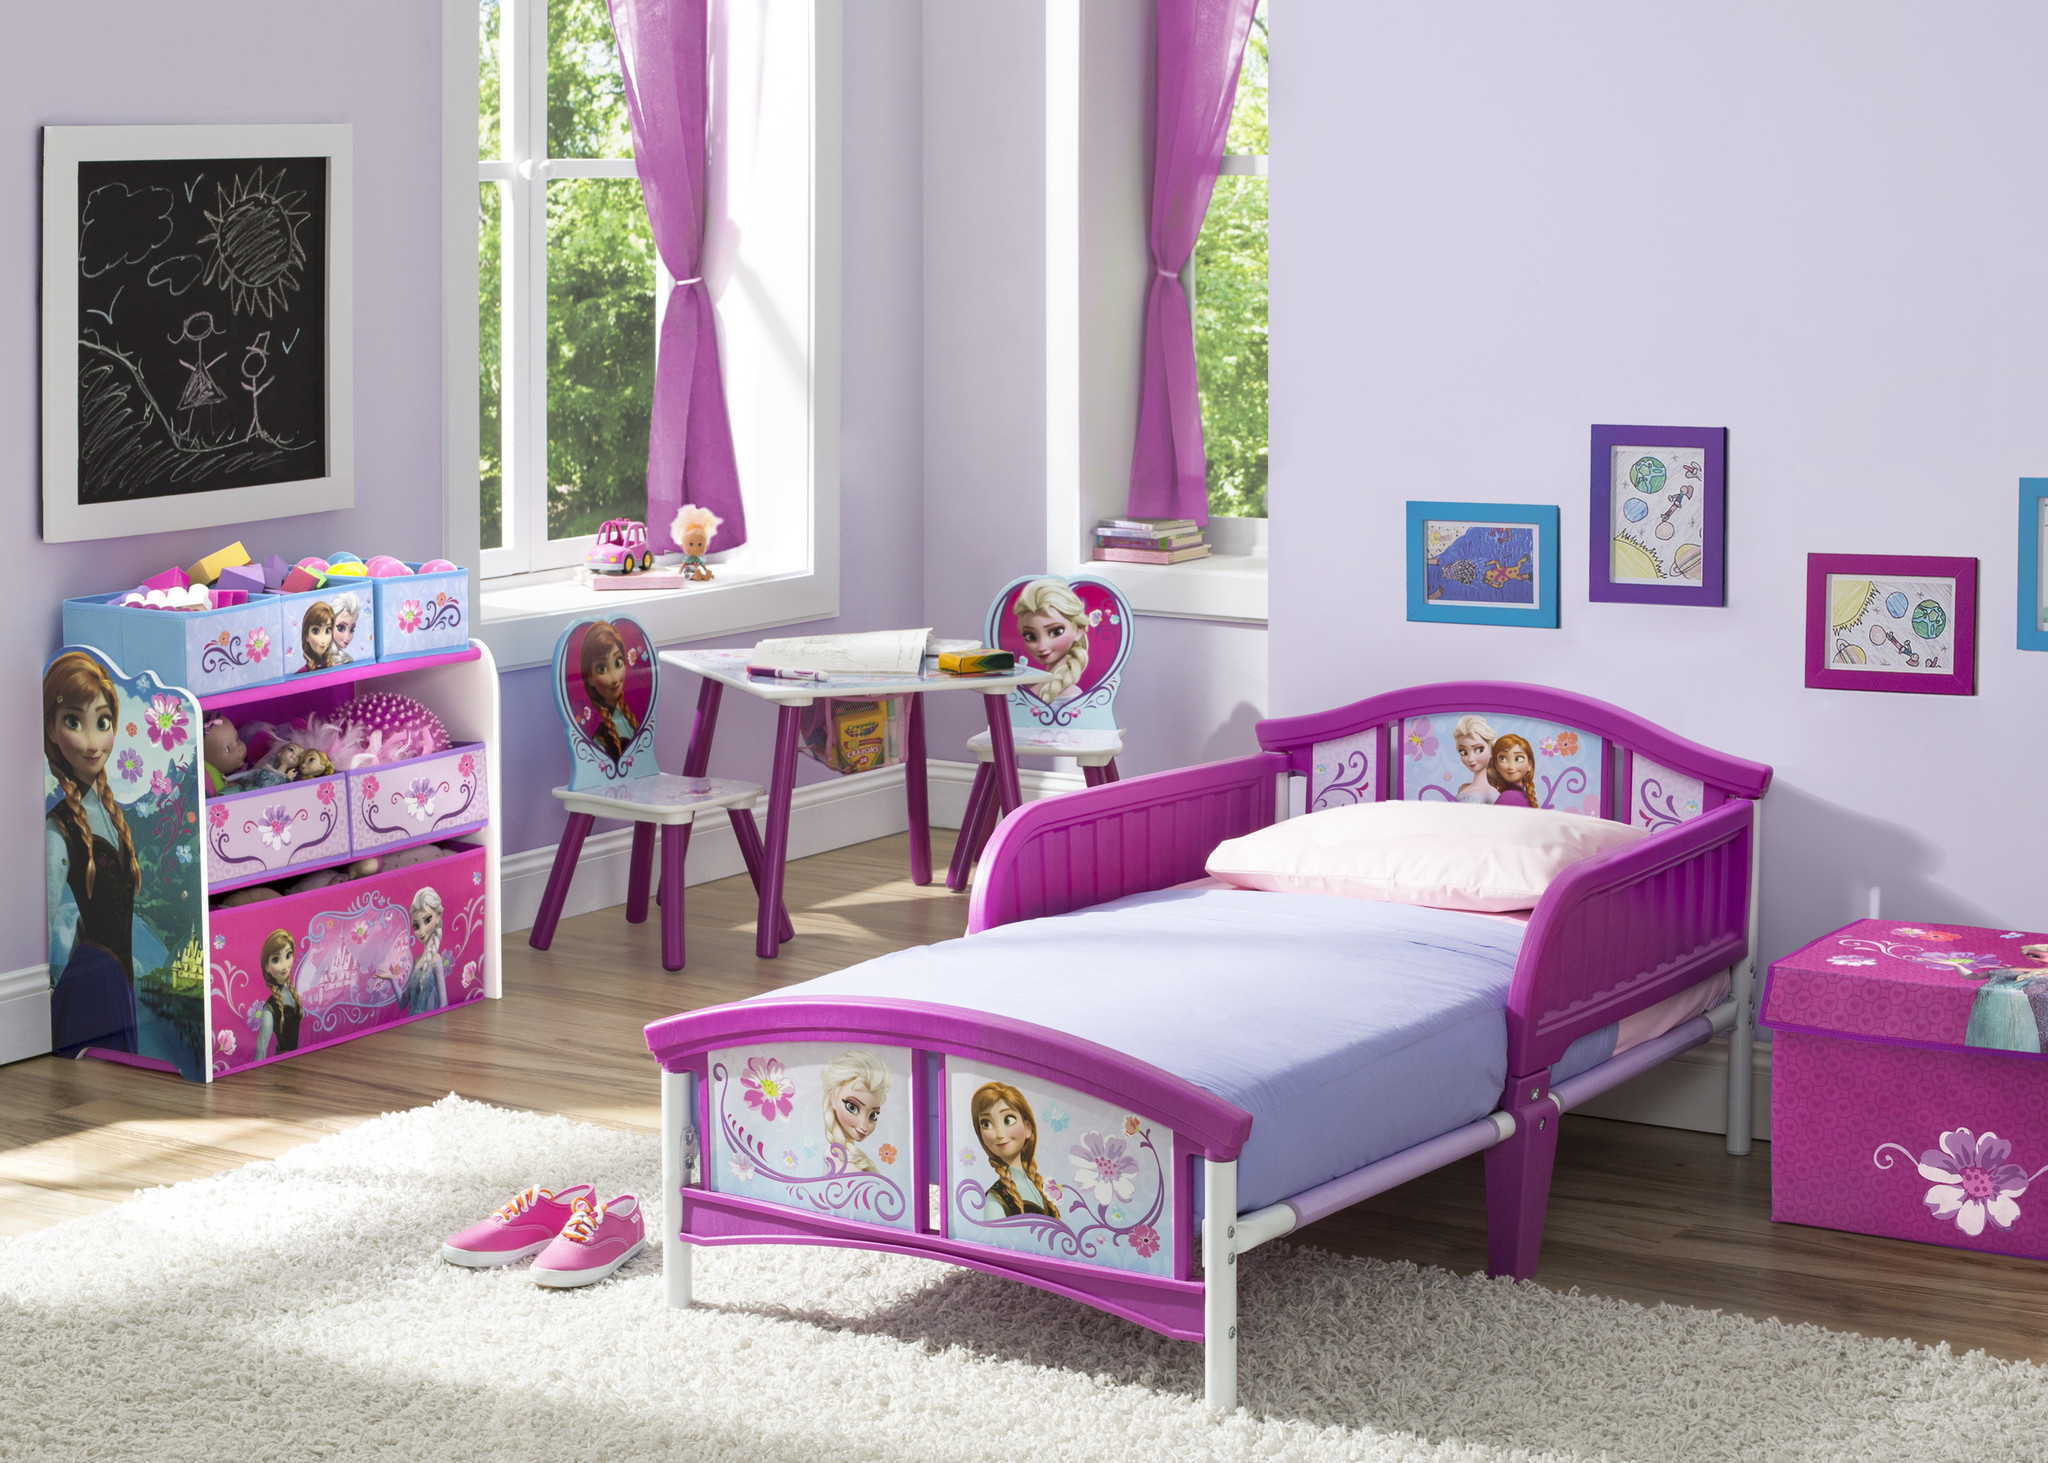 Disney Frozen Table u0026 Chair Set with Storage & Disney Frozen Table u0026 Chair Set with Storage - Ideal Baby